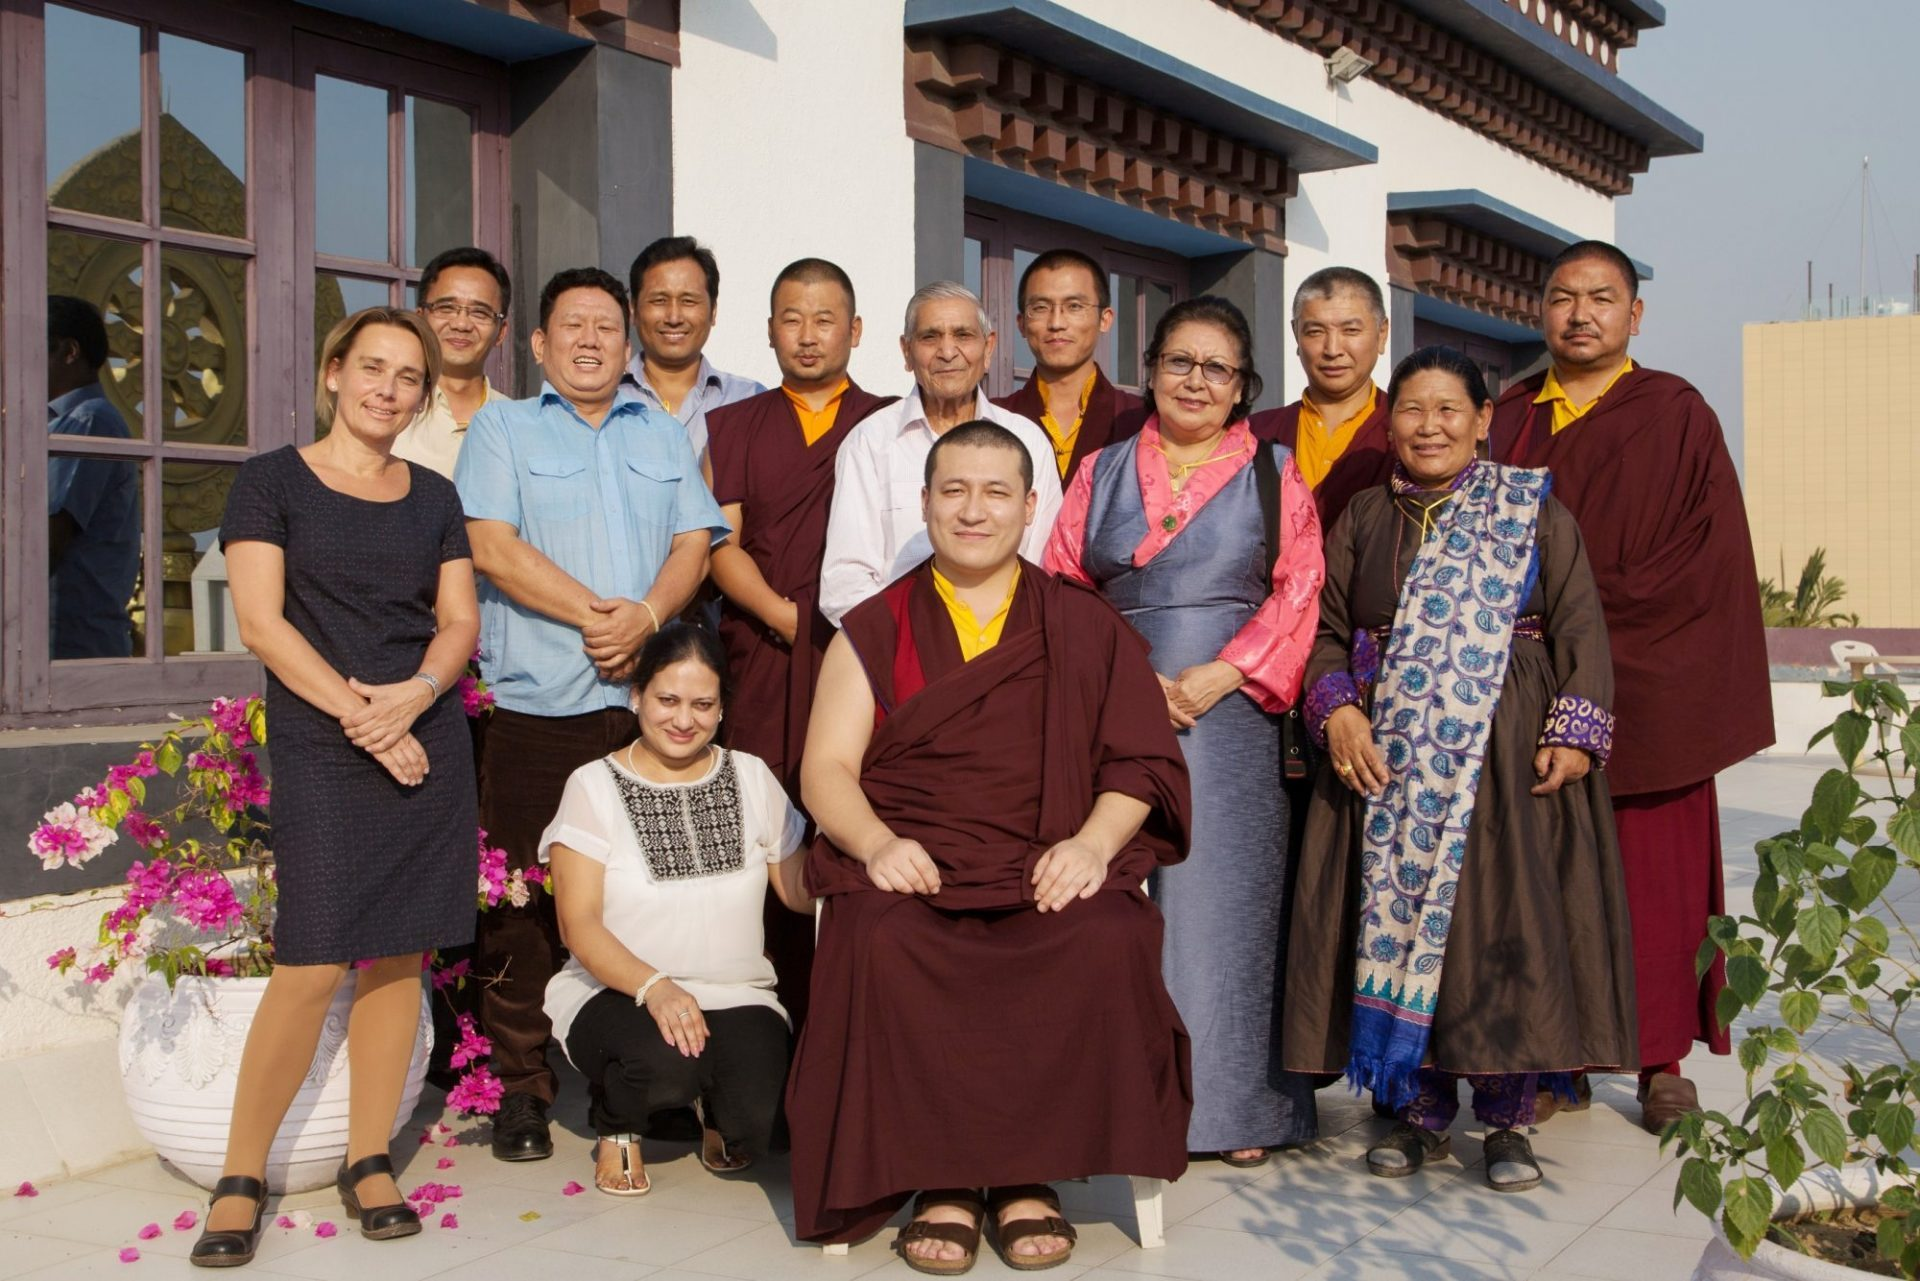 SABA group picture after a meeting at the Karmapa International Buddhist Institute, New Delhi.  Photo / Magda Jungowska